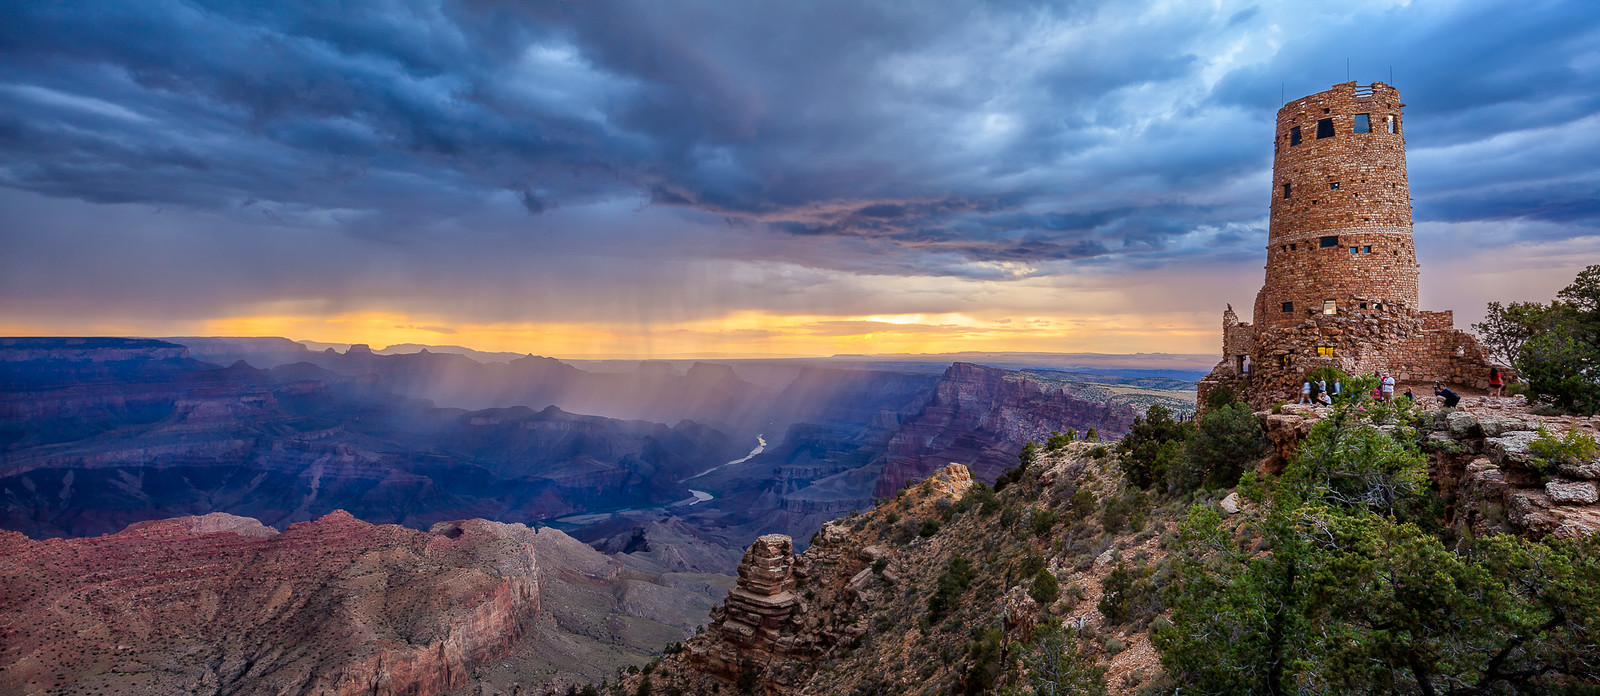 Desert View Thunderstorm - Grand Canyon National Park